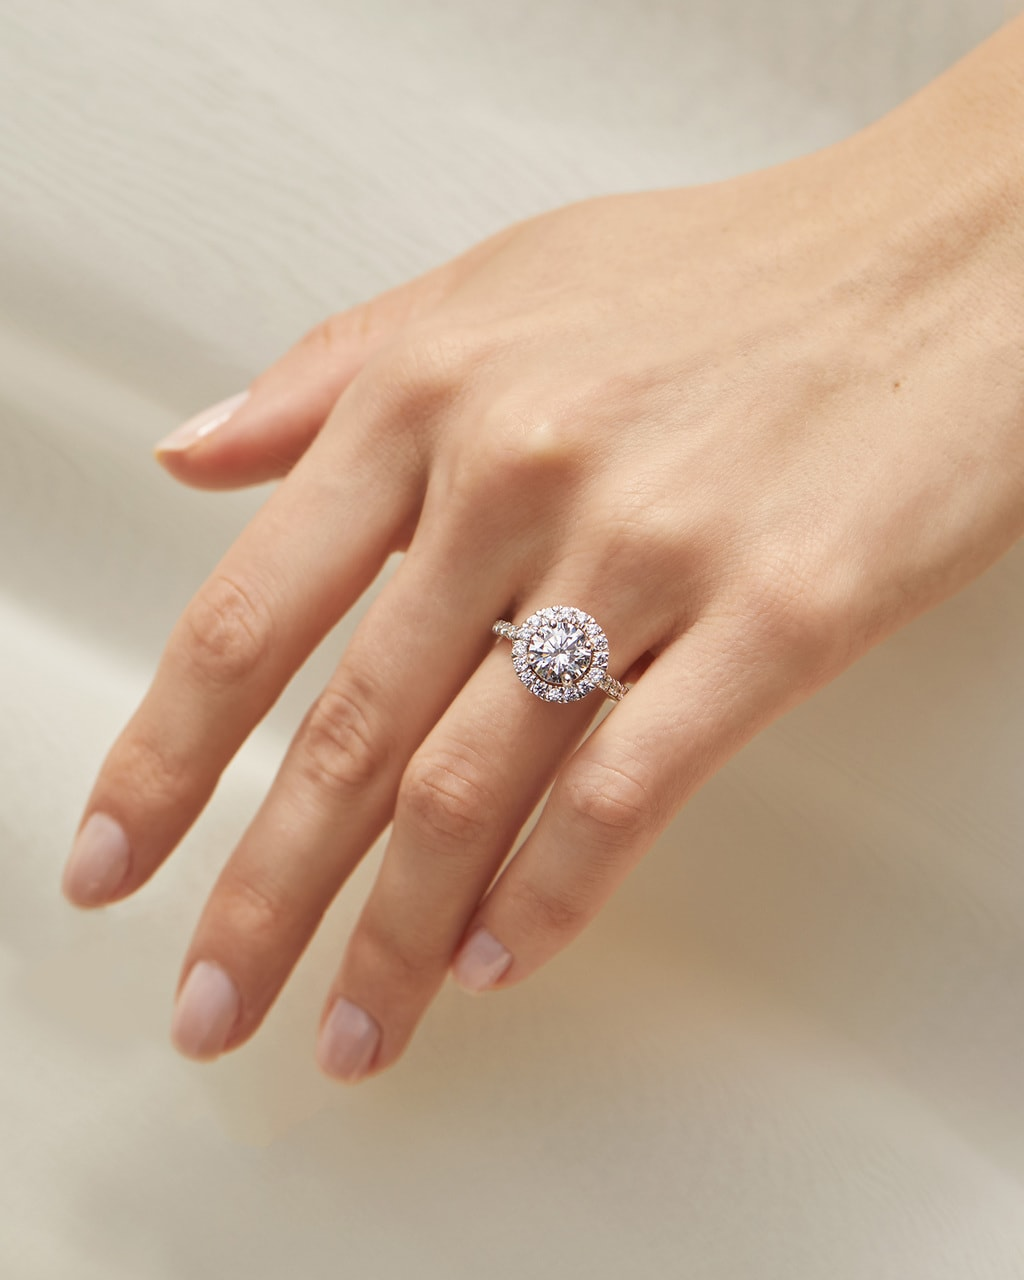 Engagement Ring Shopping Secrets from the Experts with Great Heights